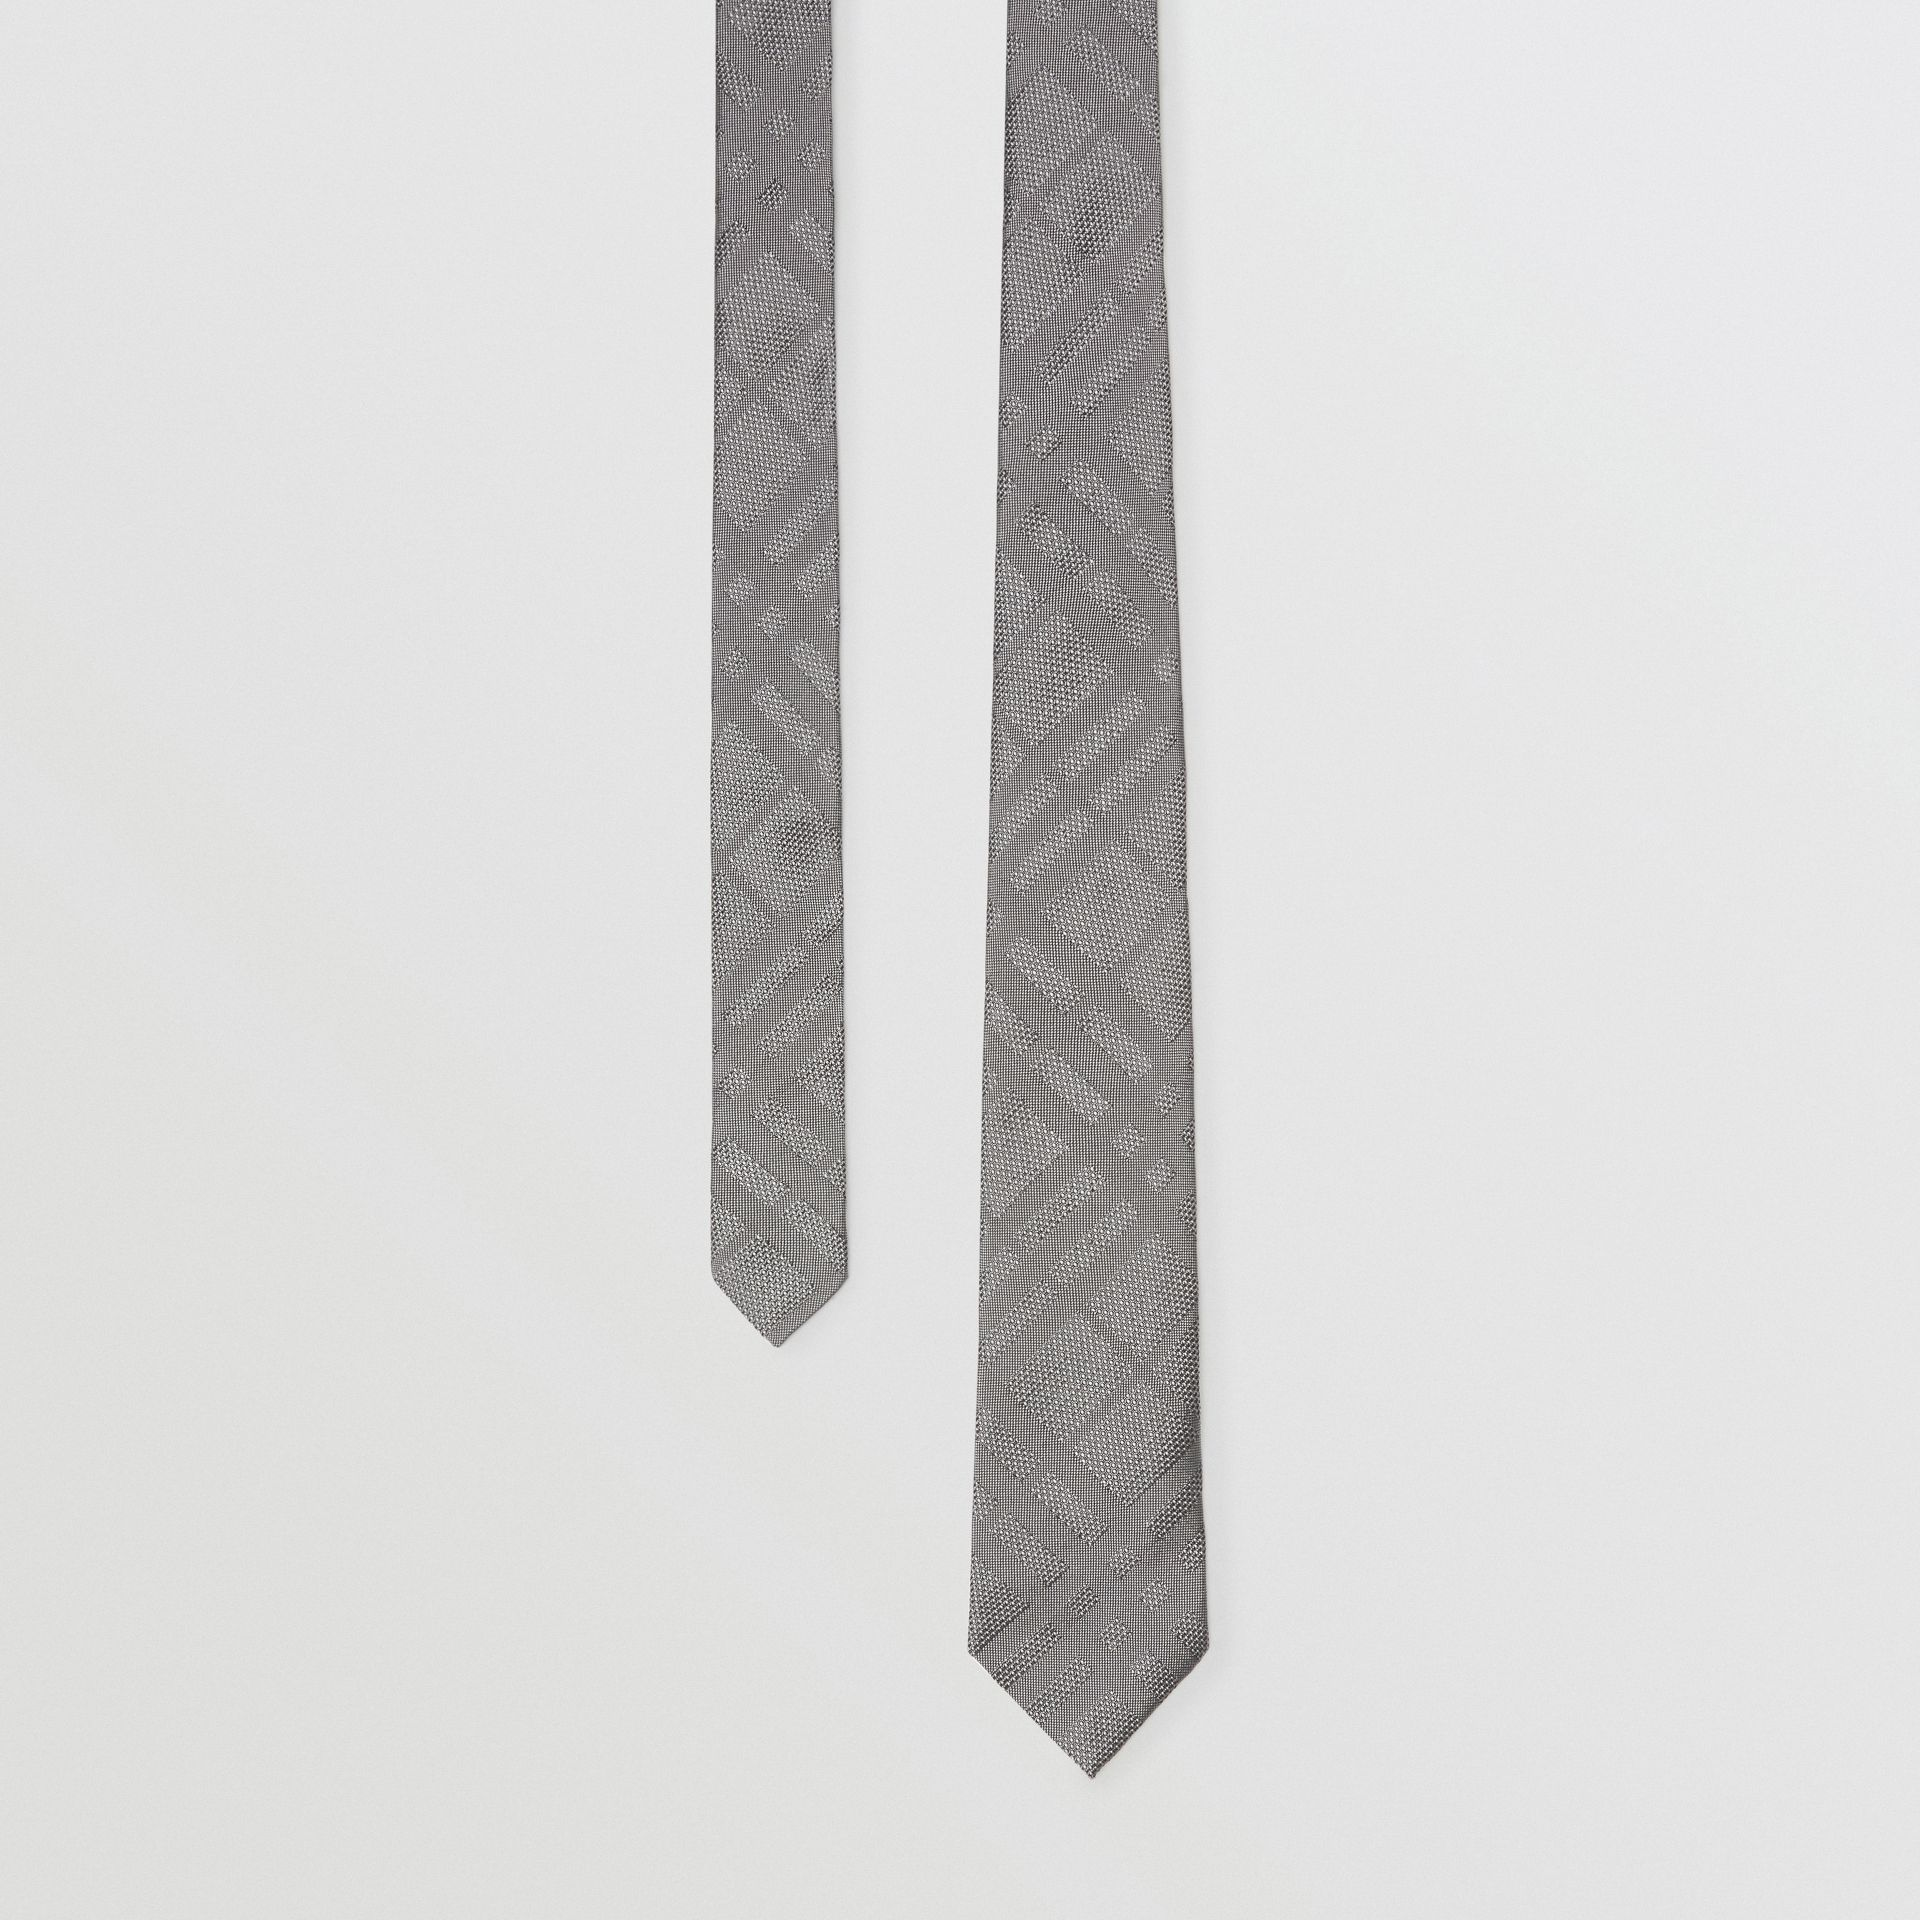 Classic Cut Check Silk Jacquard Tie in Charcoal - Men | Burberry Singapore - gallery image 0